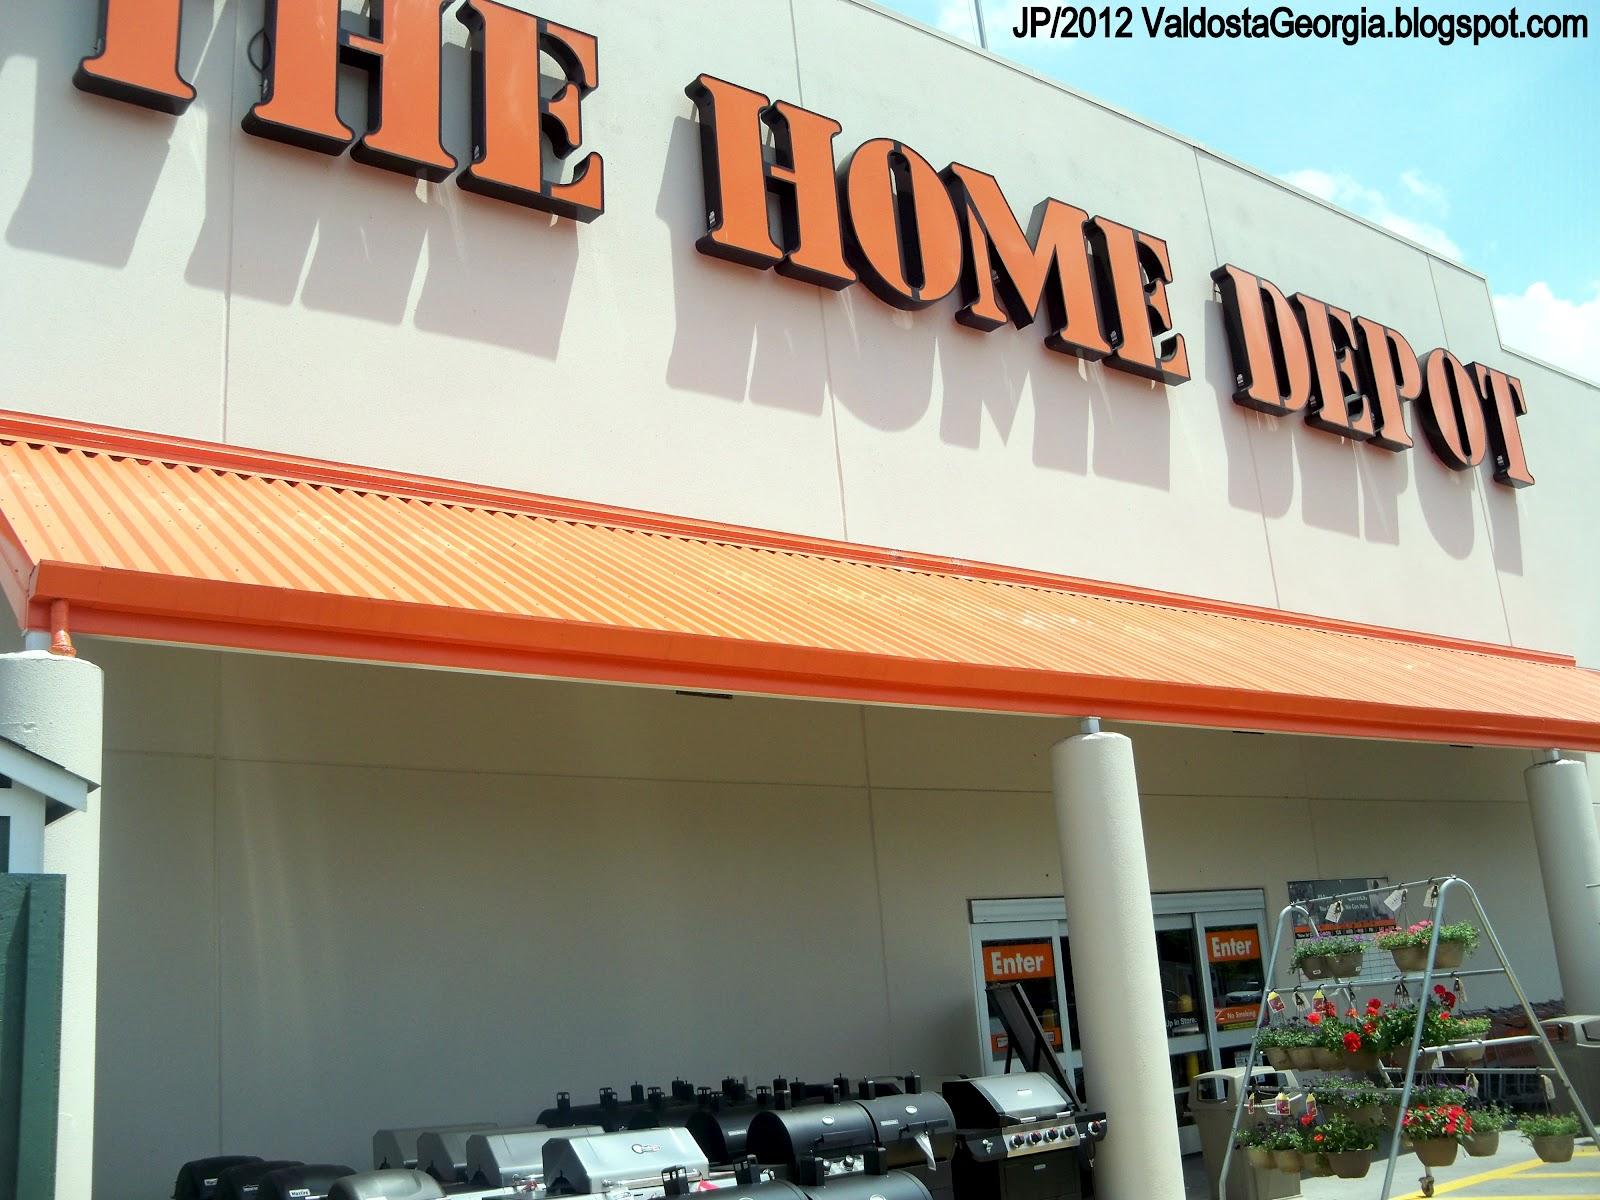 Home depot coupons for building materials